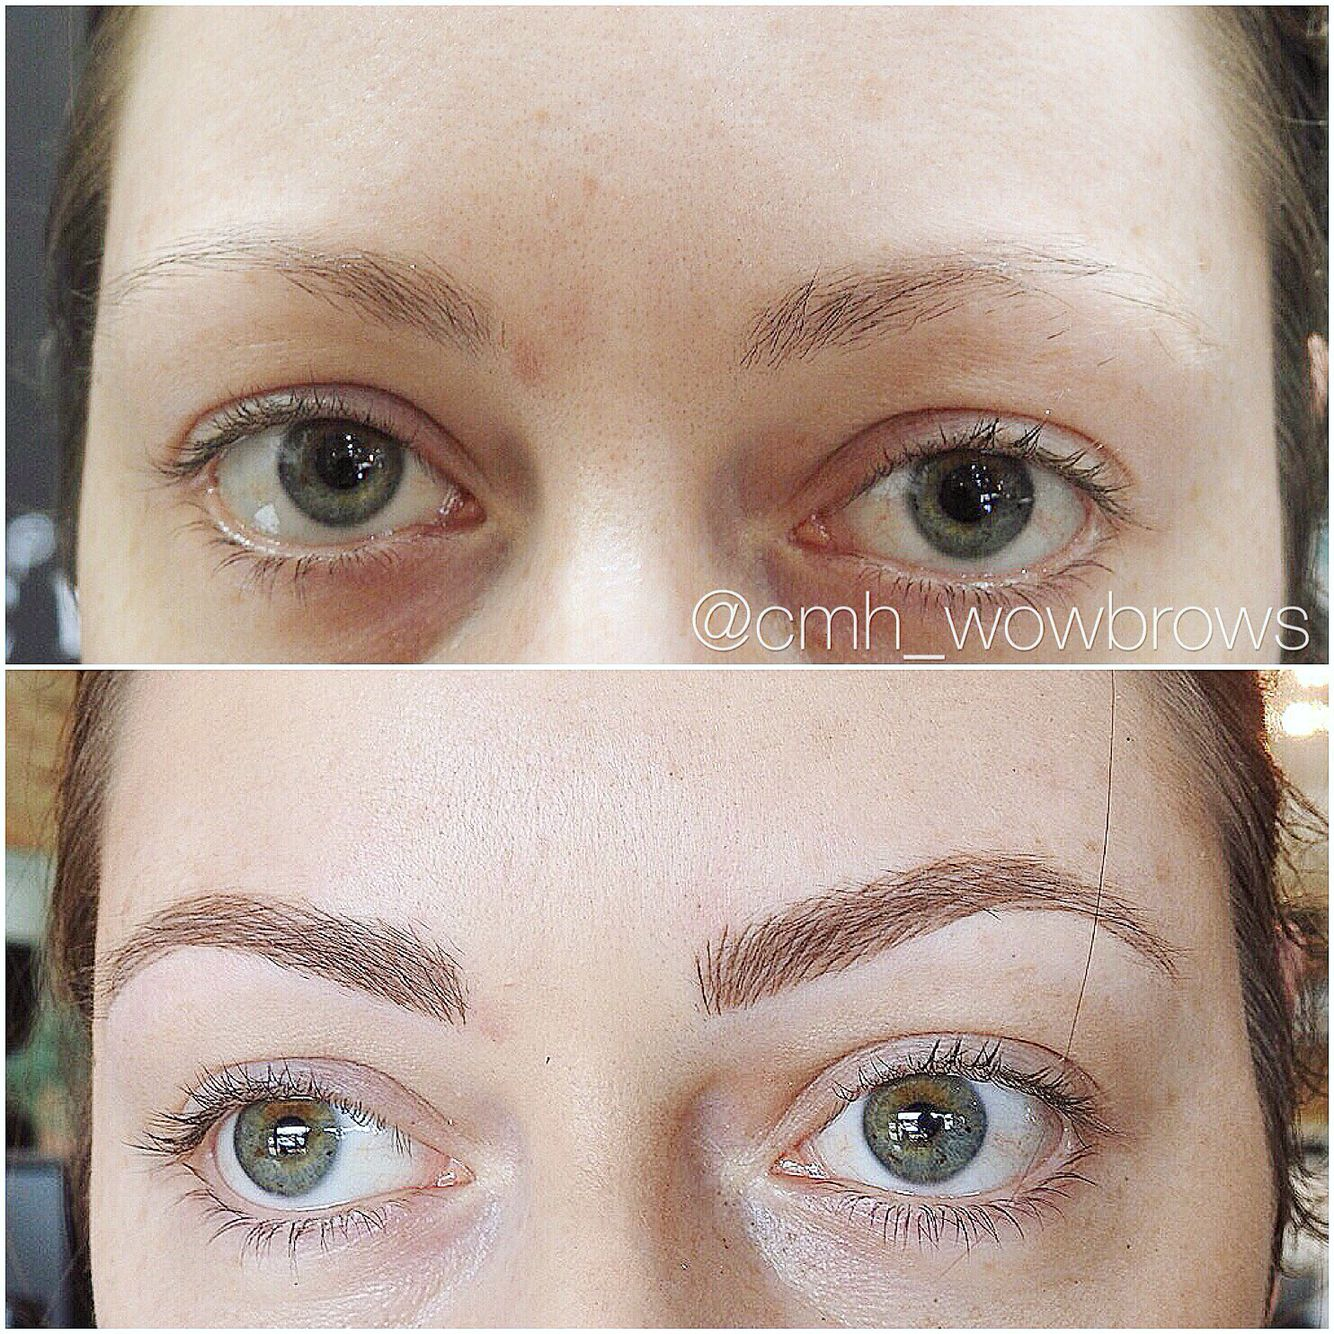 Hair stroke feather touch micro blading natural eyebrow for Eyebrow tattoo microblading